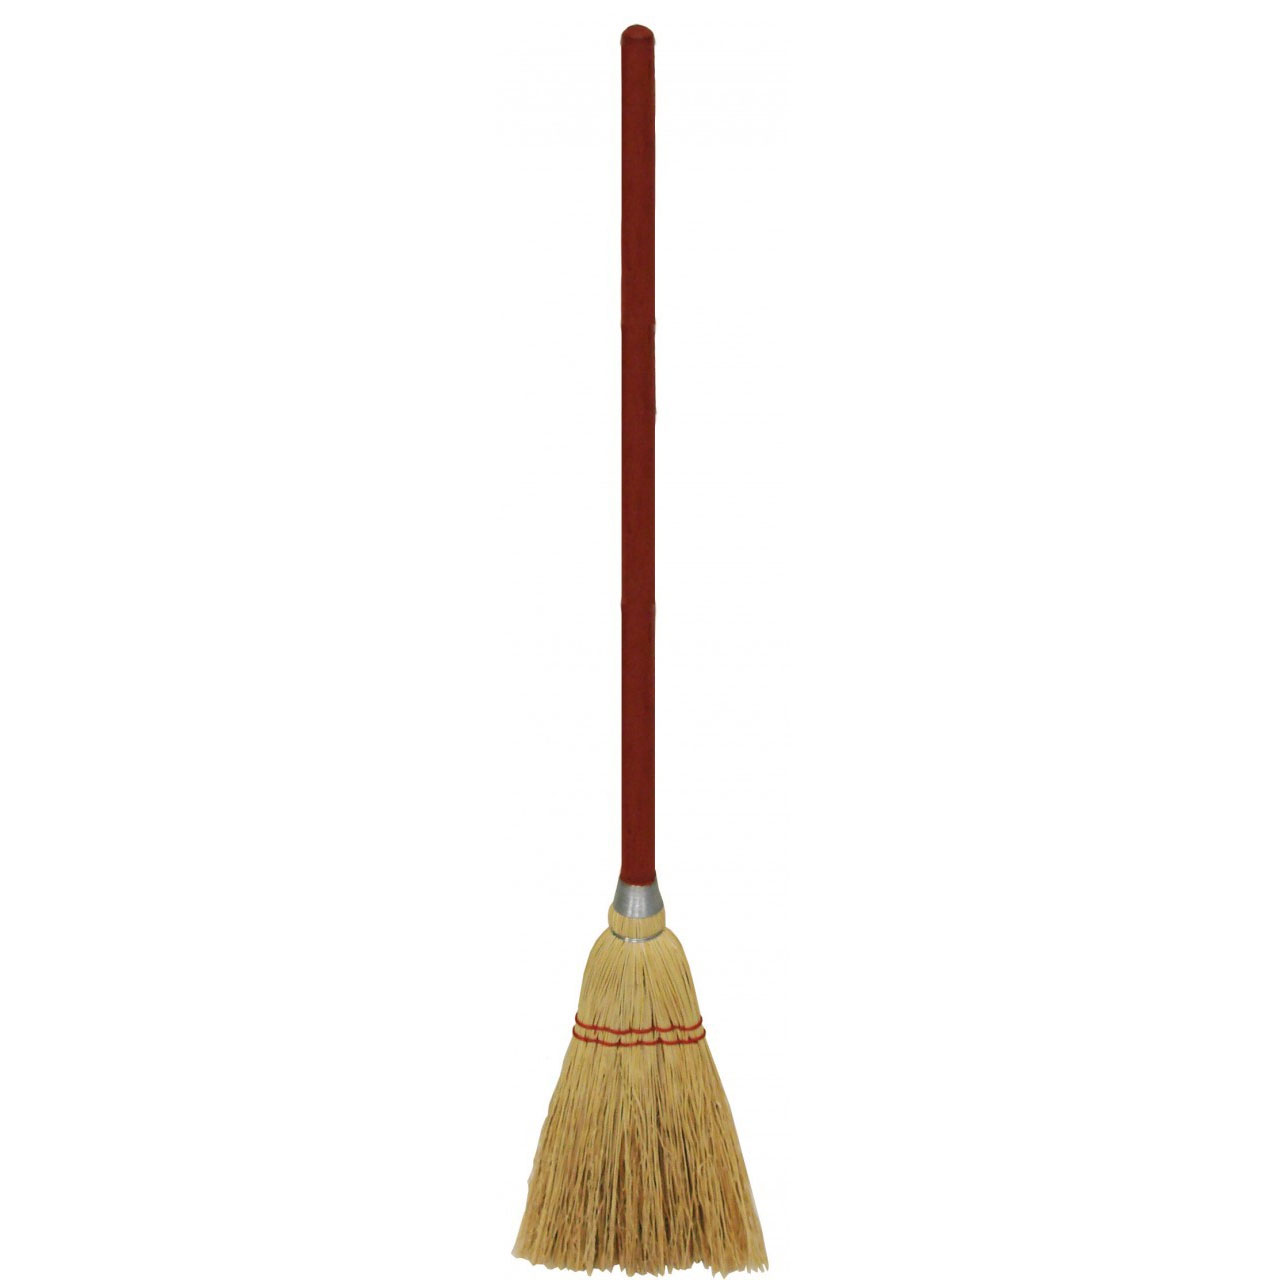 5 5 Quot Toy Corn Broom Unoclean